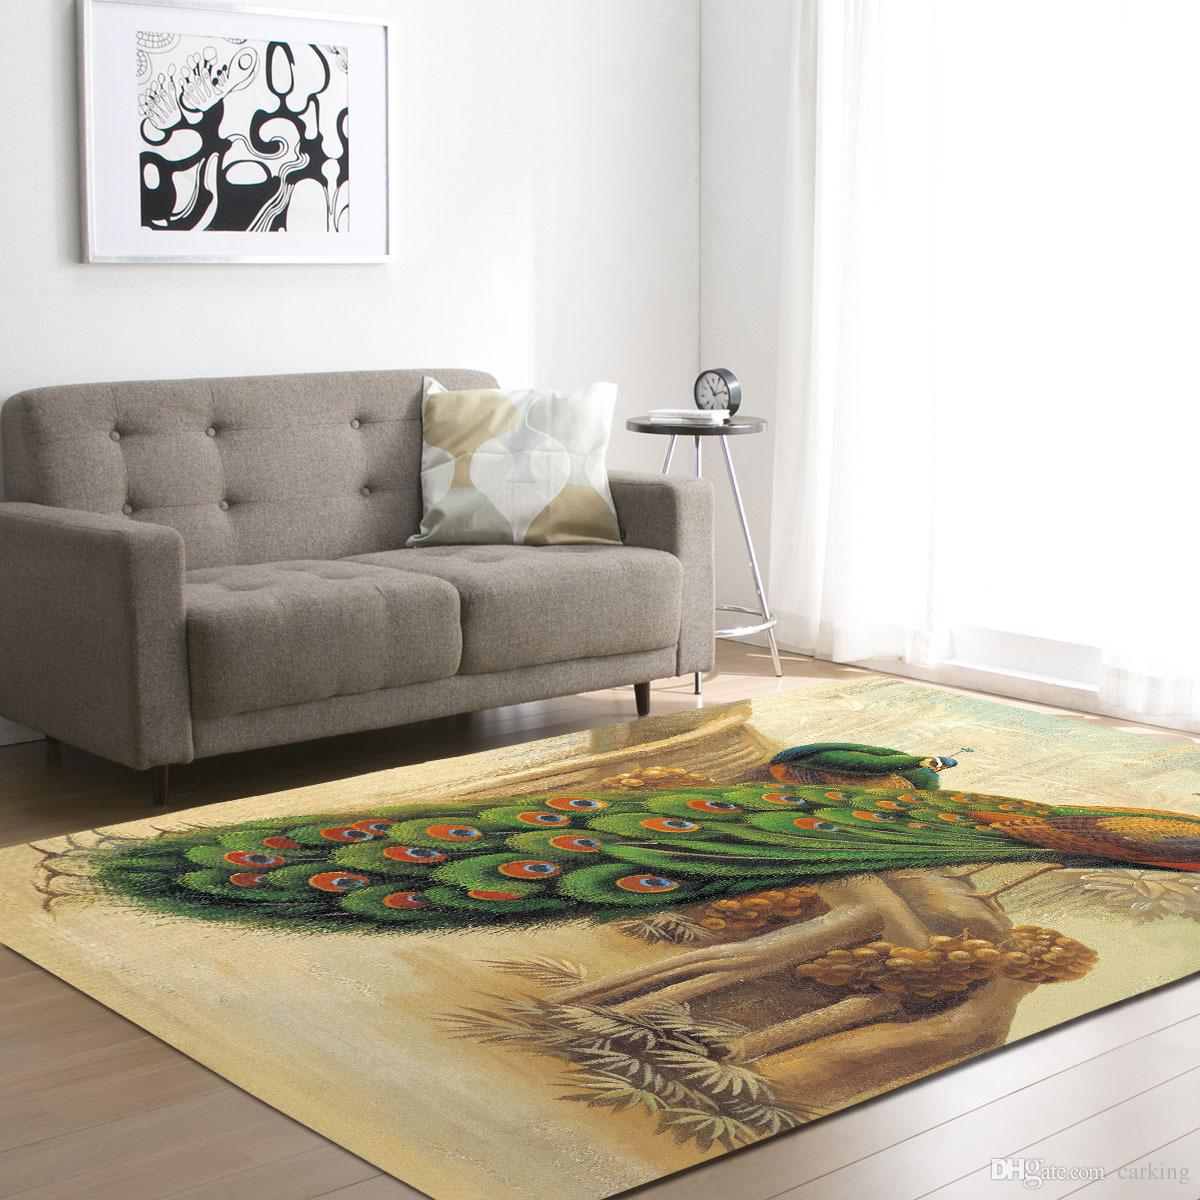 cheap living room carpets brown paint carpet with peacock drawing dinning footcloth minimal design